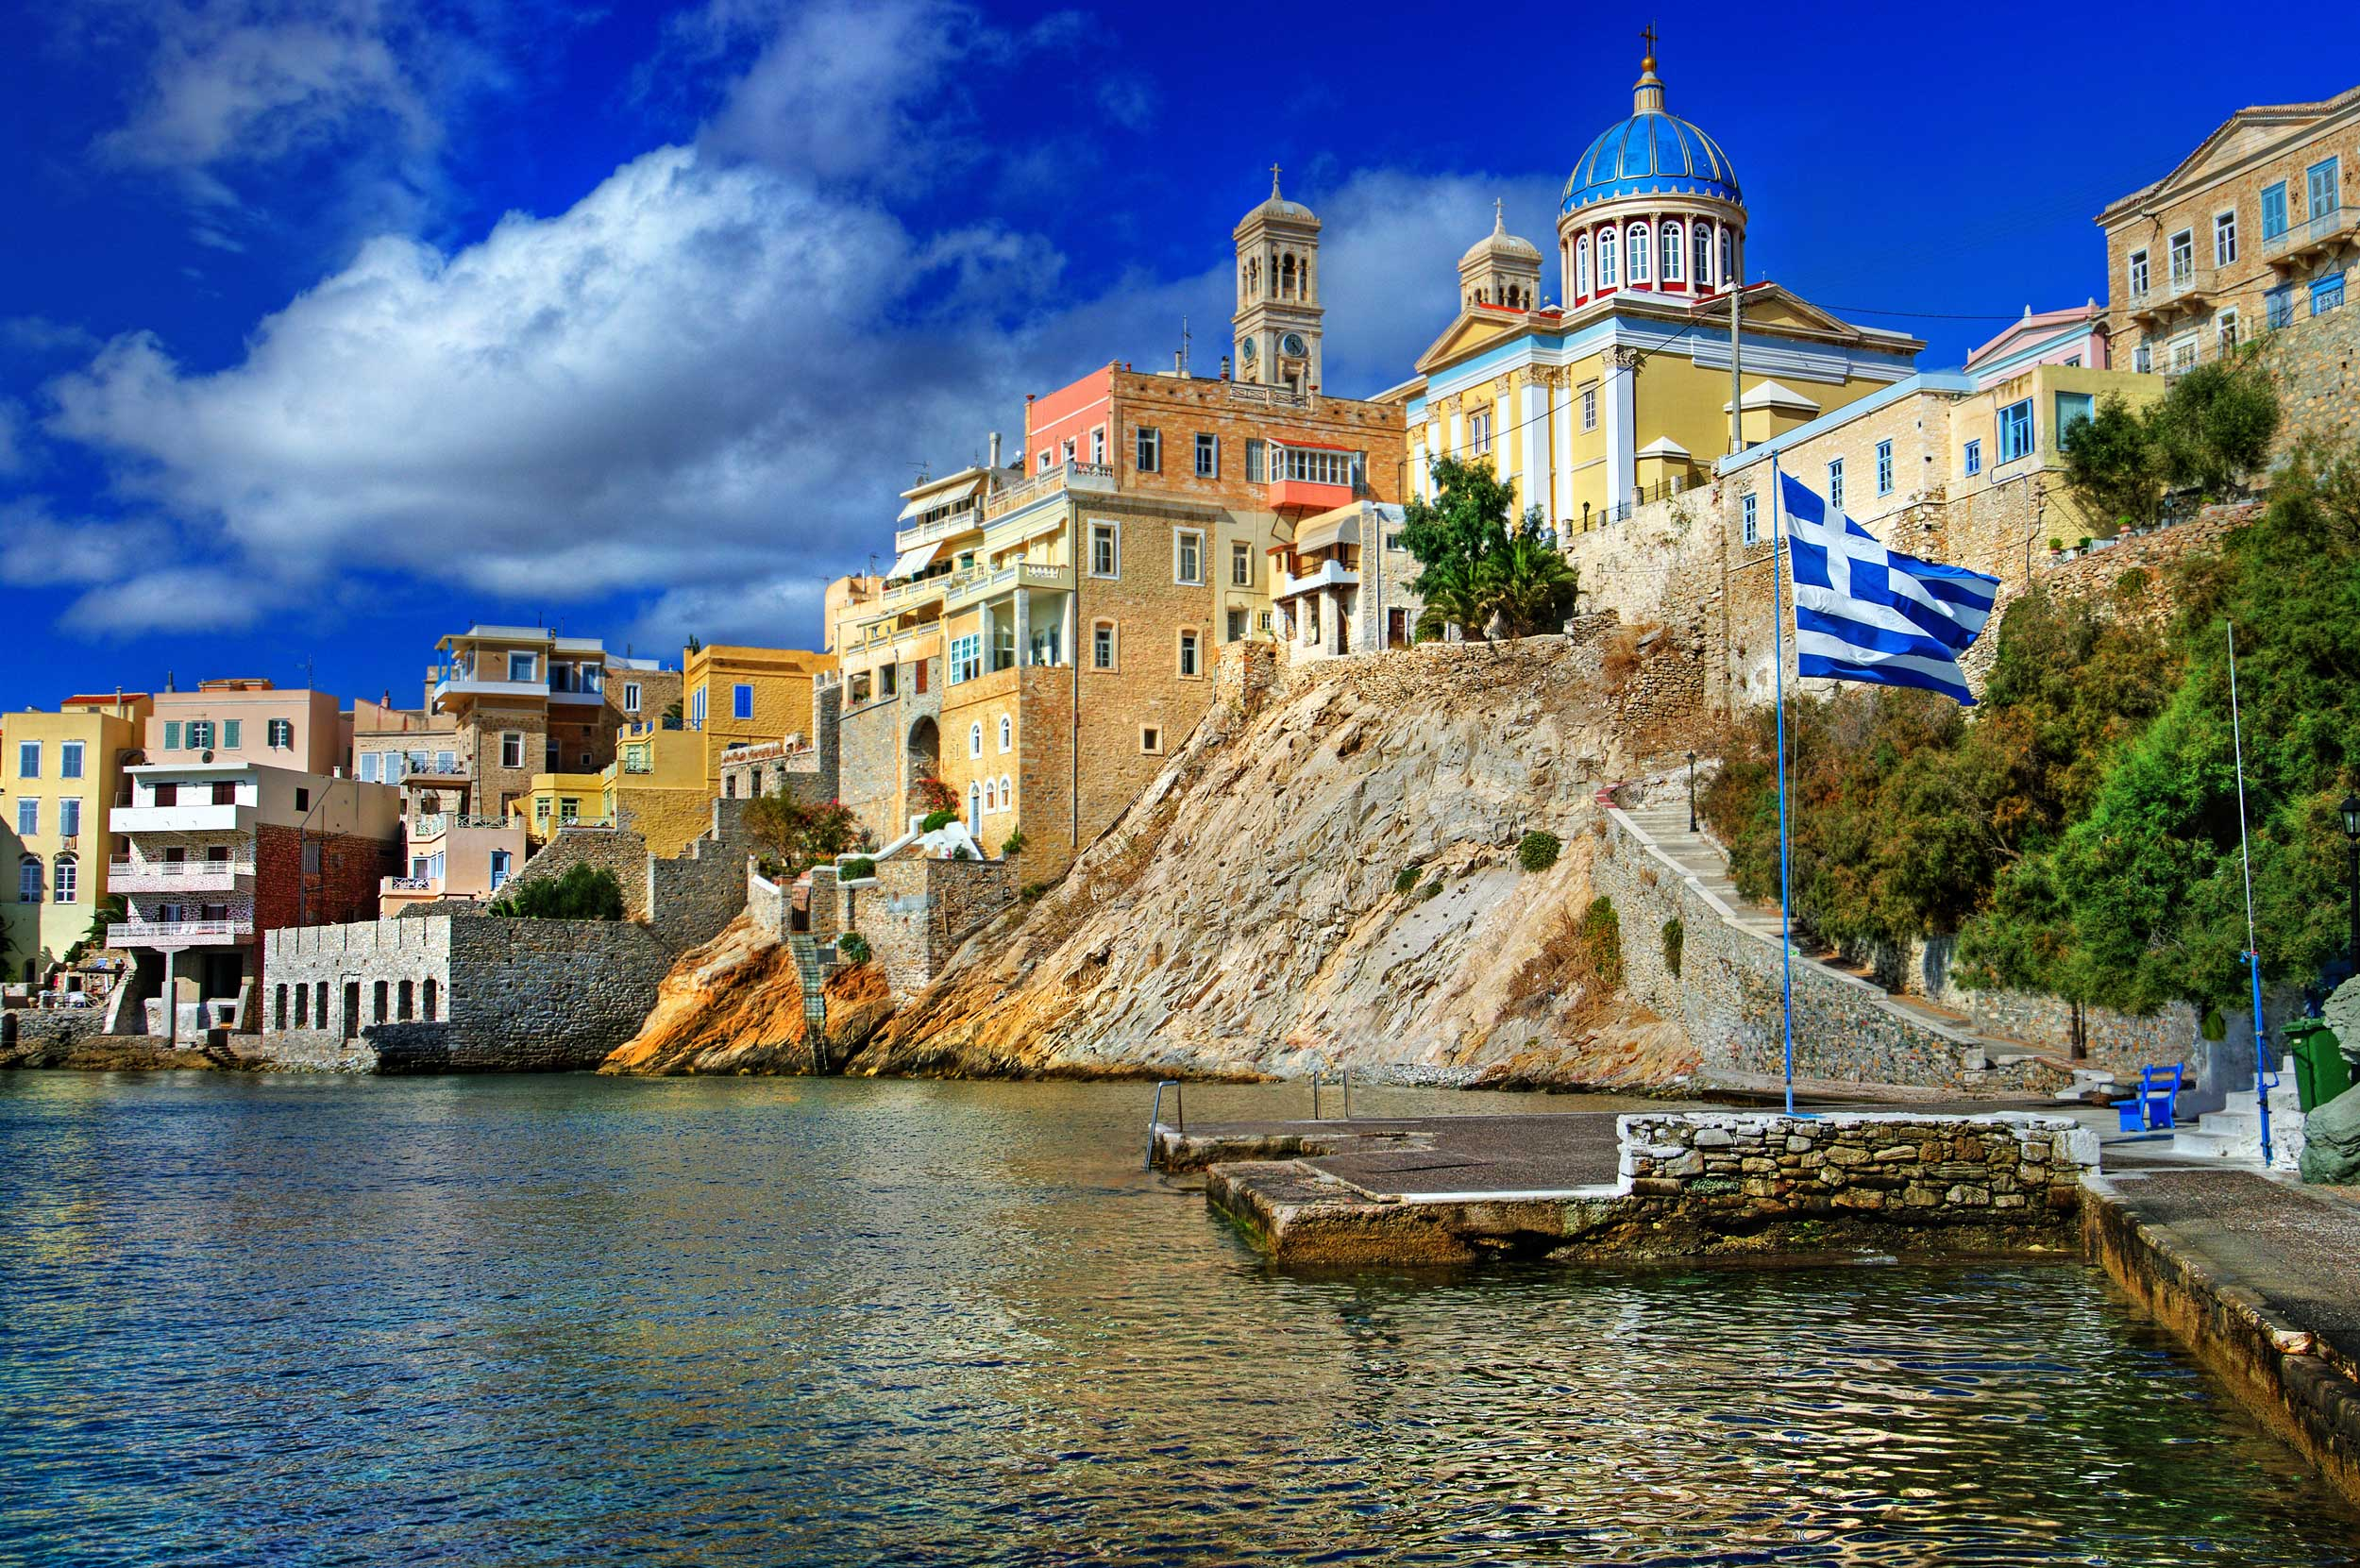 Jetty below a town set on rocks above it with a deep blue-domed building against the skyline in Greece